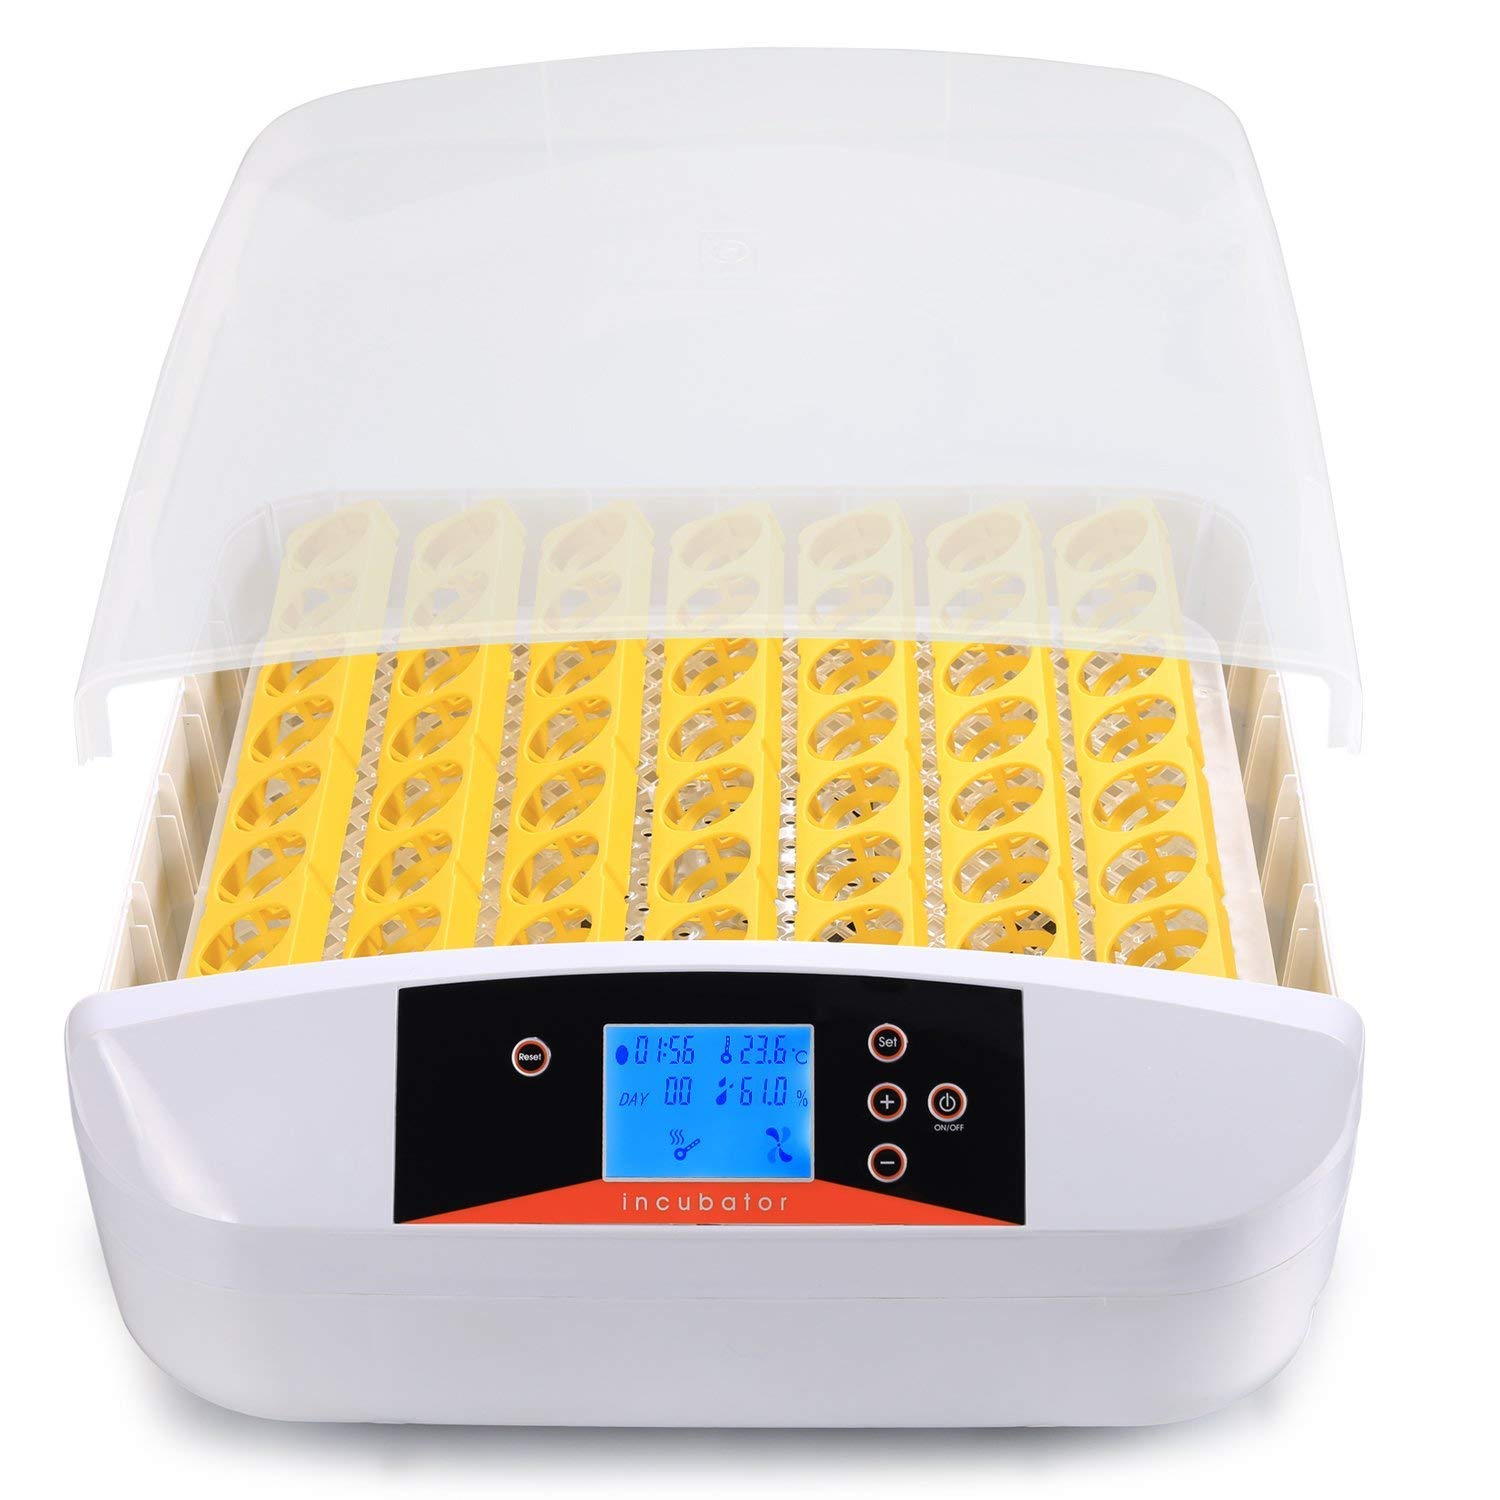 Homdox Automatic Digital Clear Egg Incubator Hatcher Egg Turning Temperature Control US Plug Yellow (7 Eggs Incubator) 3048866011